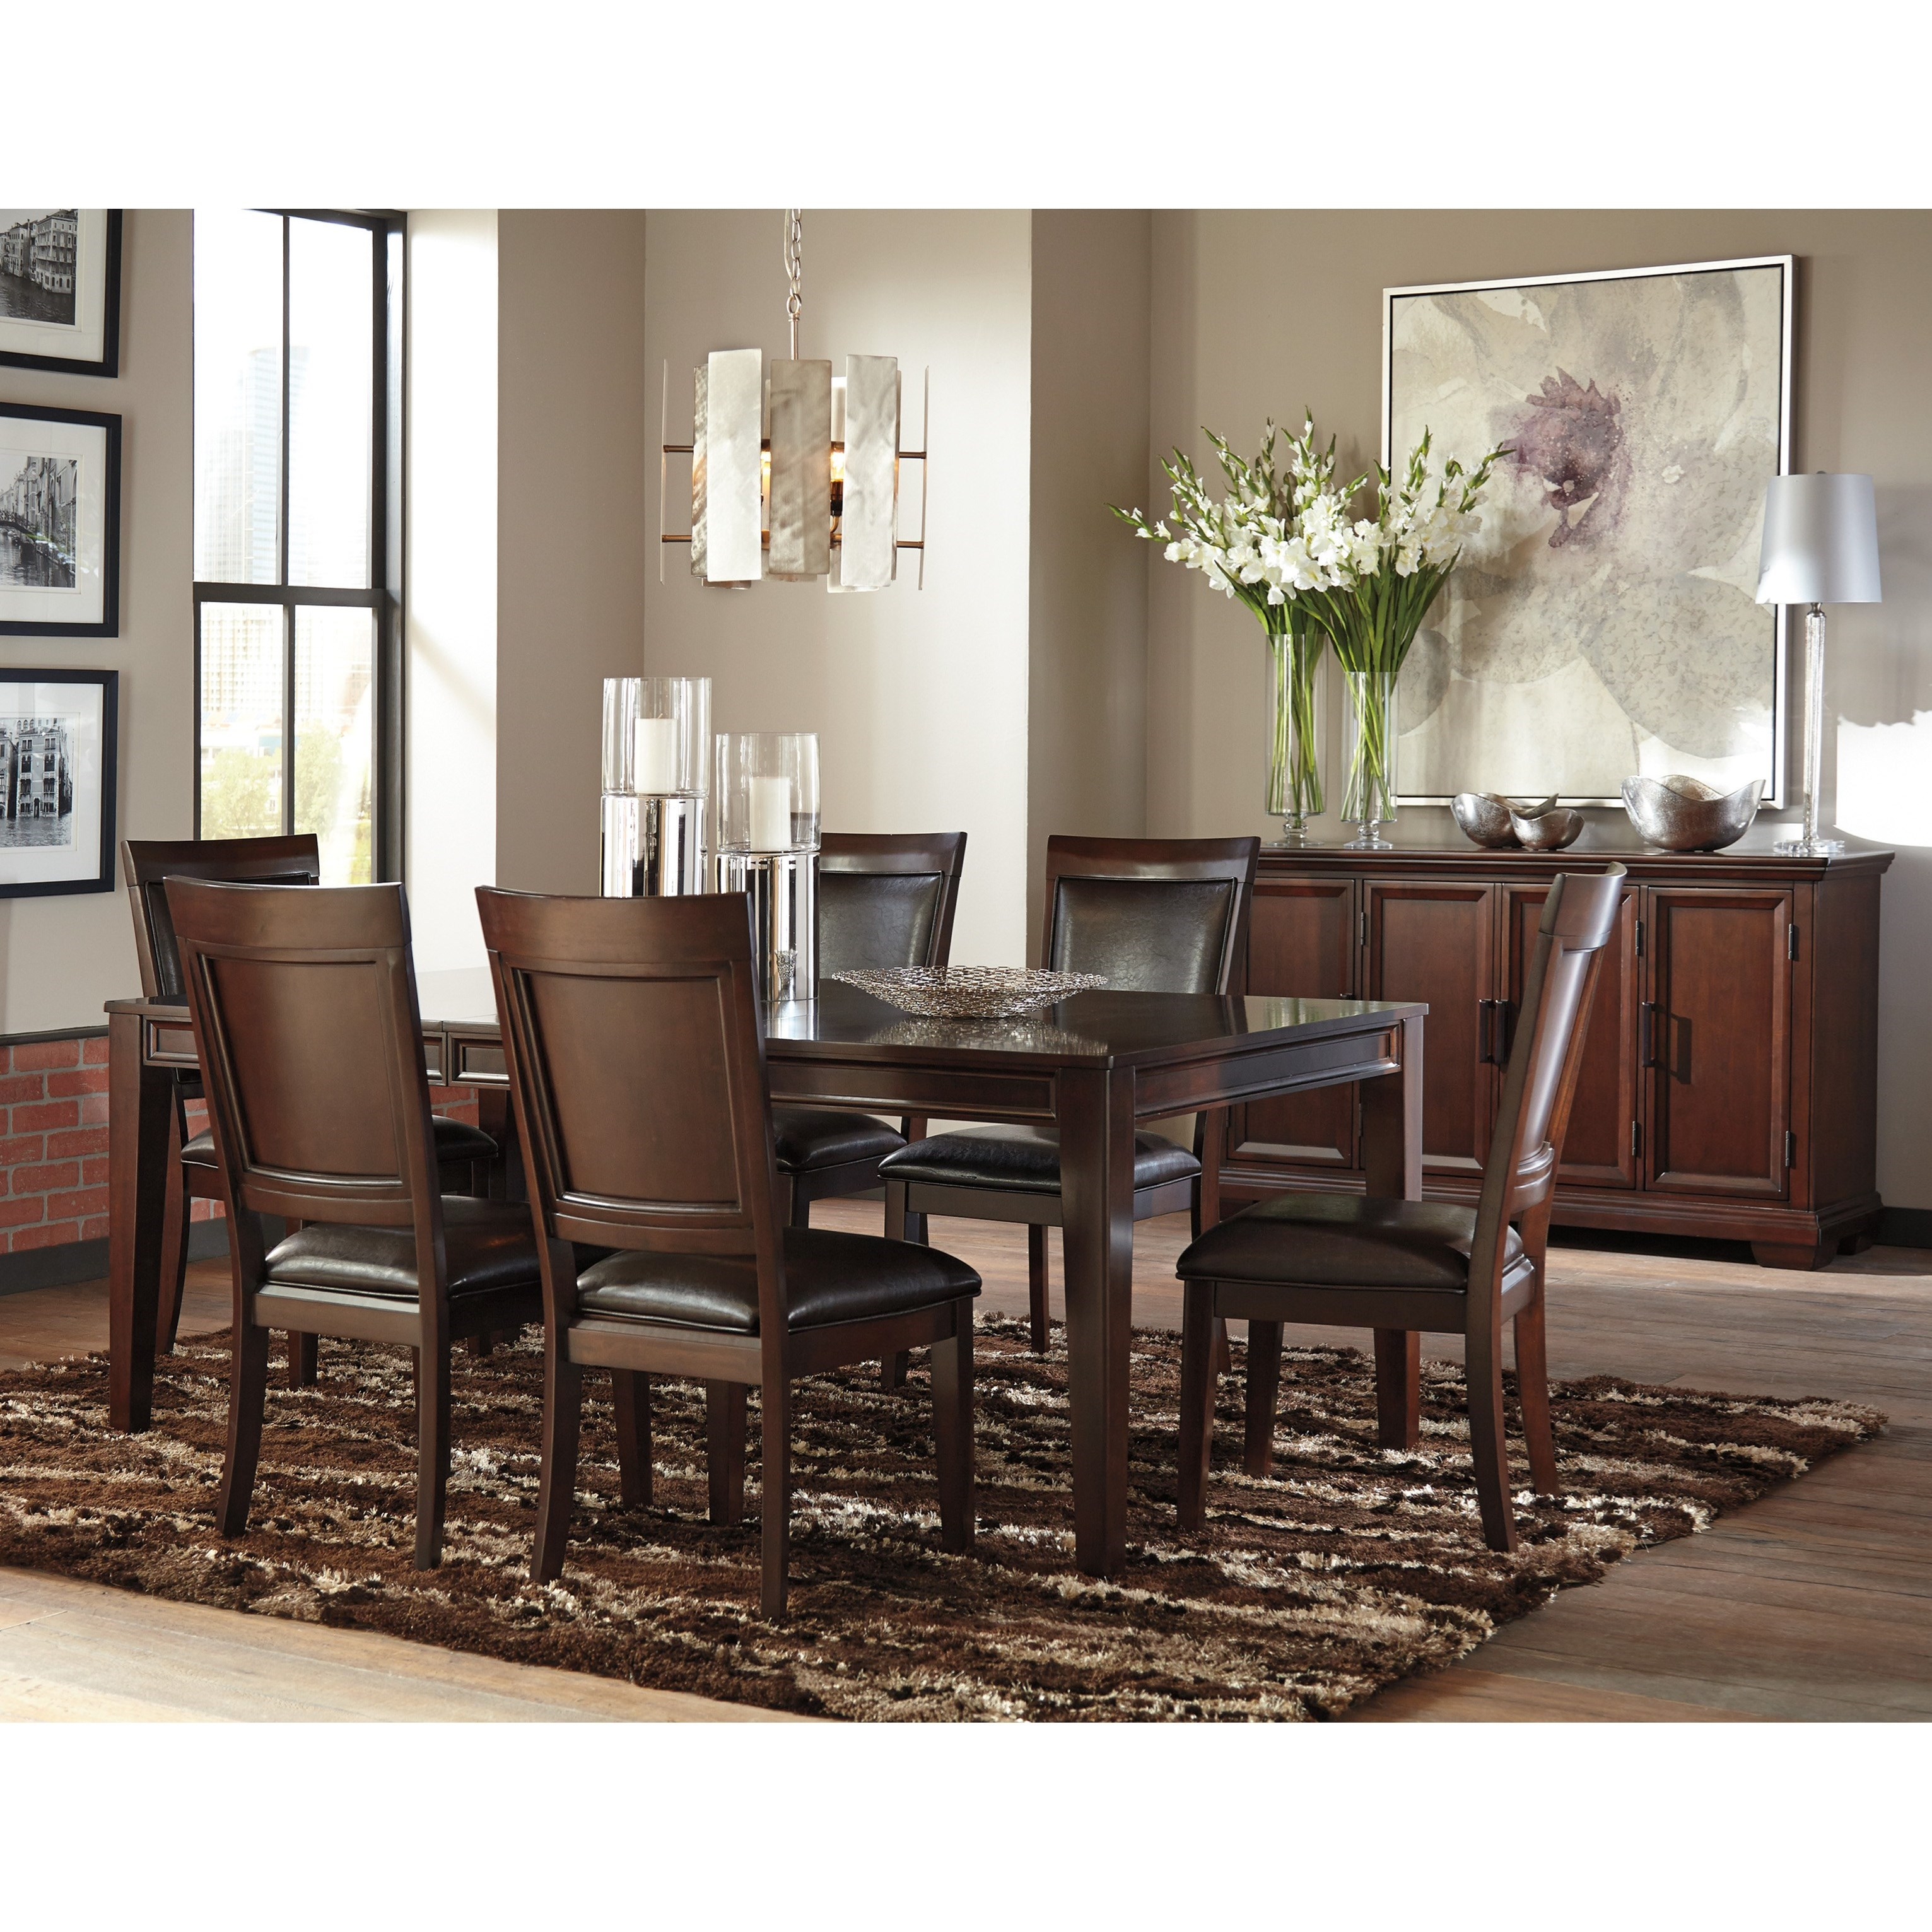 Signature design by ashley shadyn casual dining room group for Casual dining room furniture